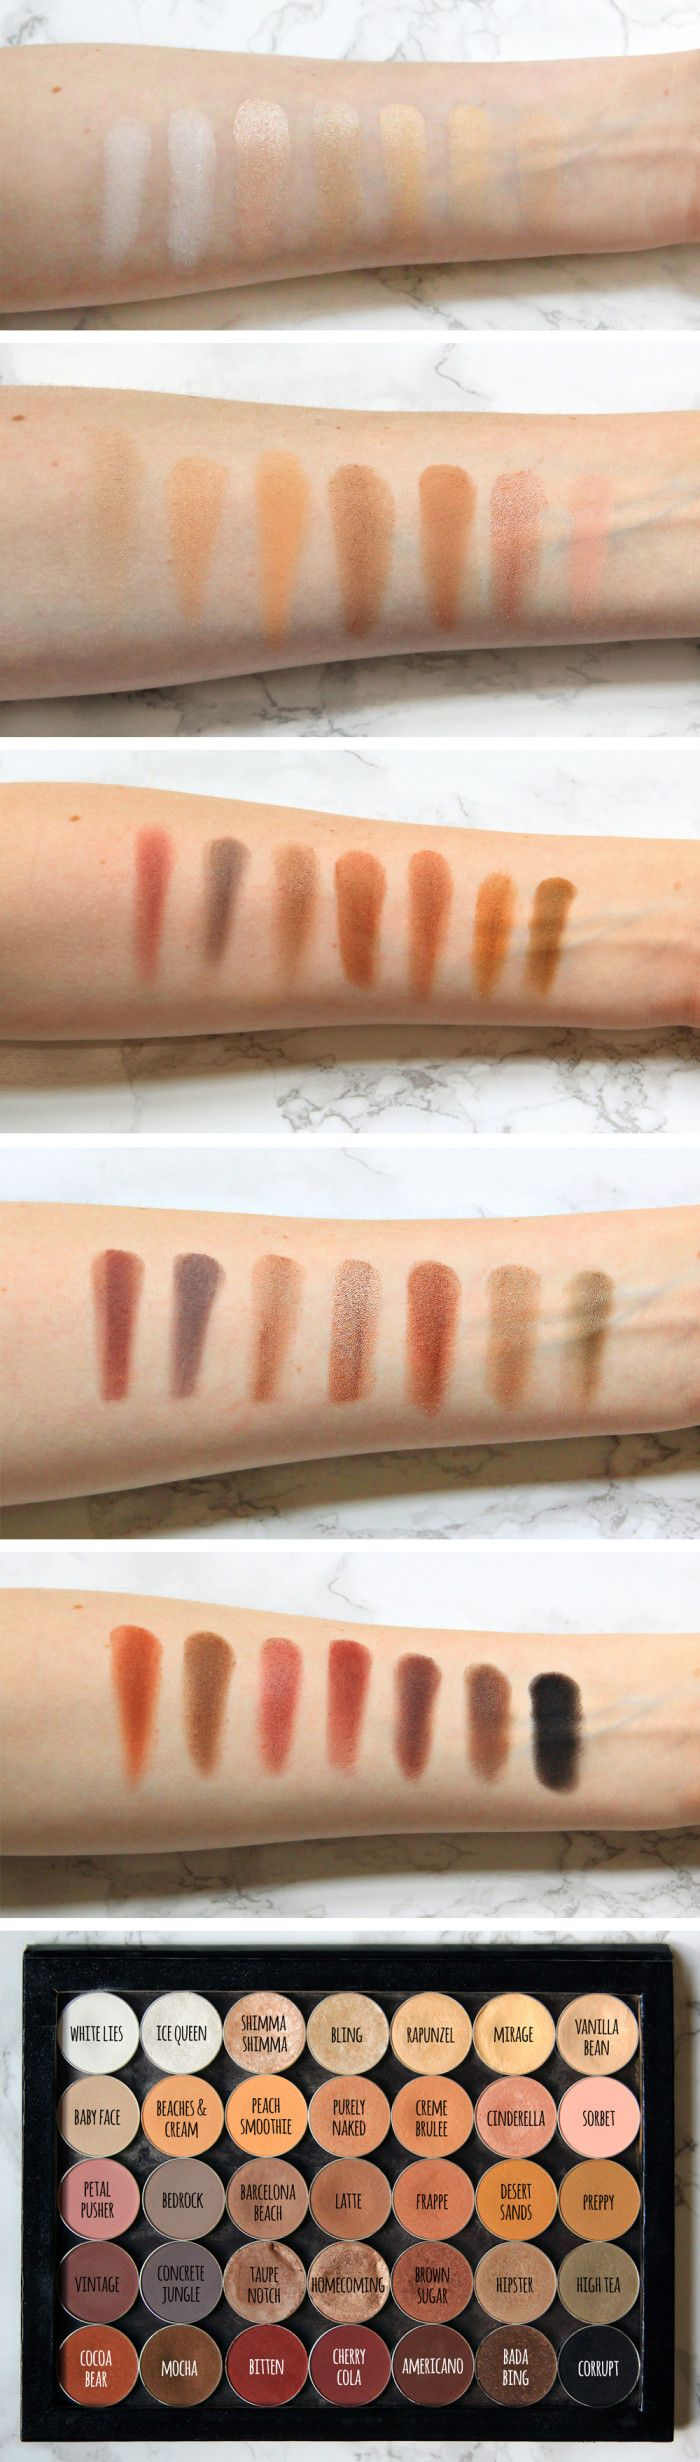 The motherload of Makeup Geek swatches!